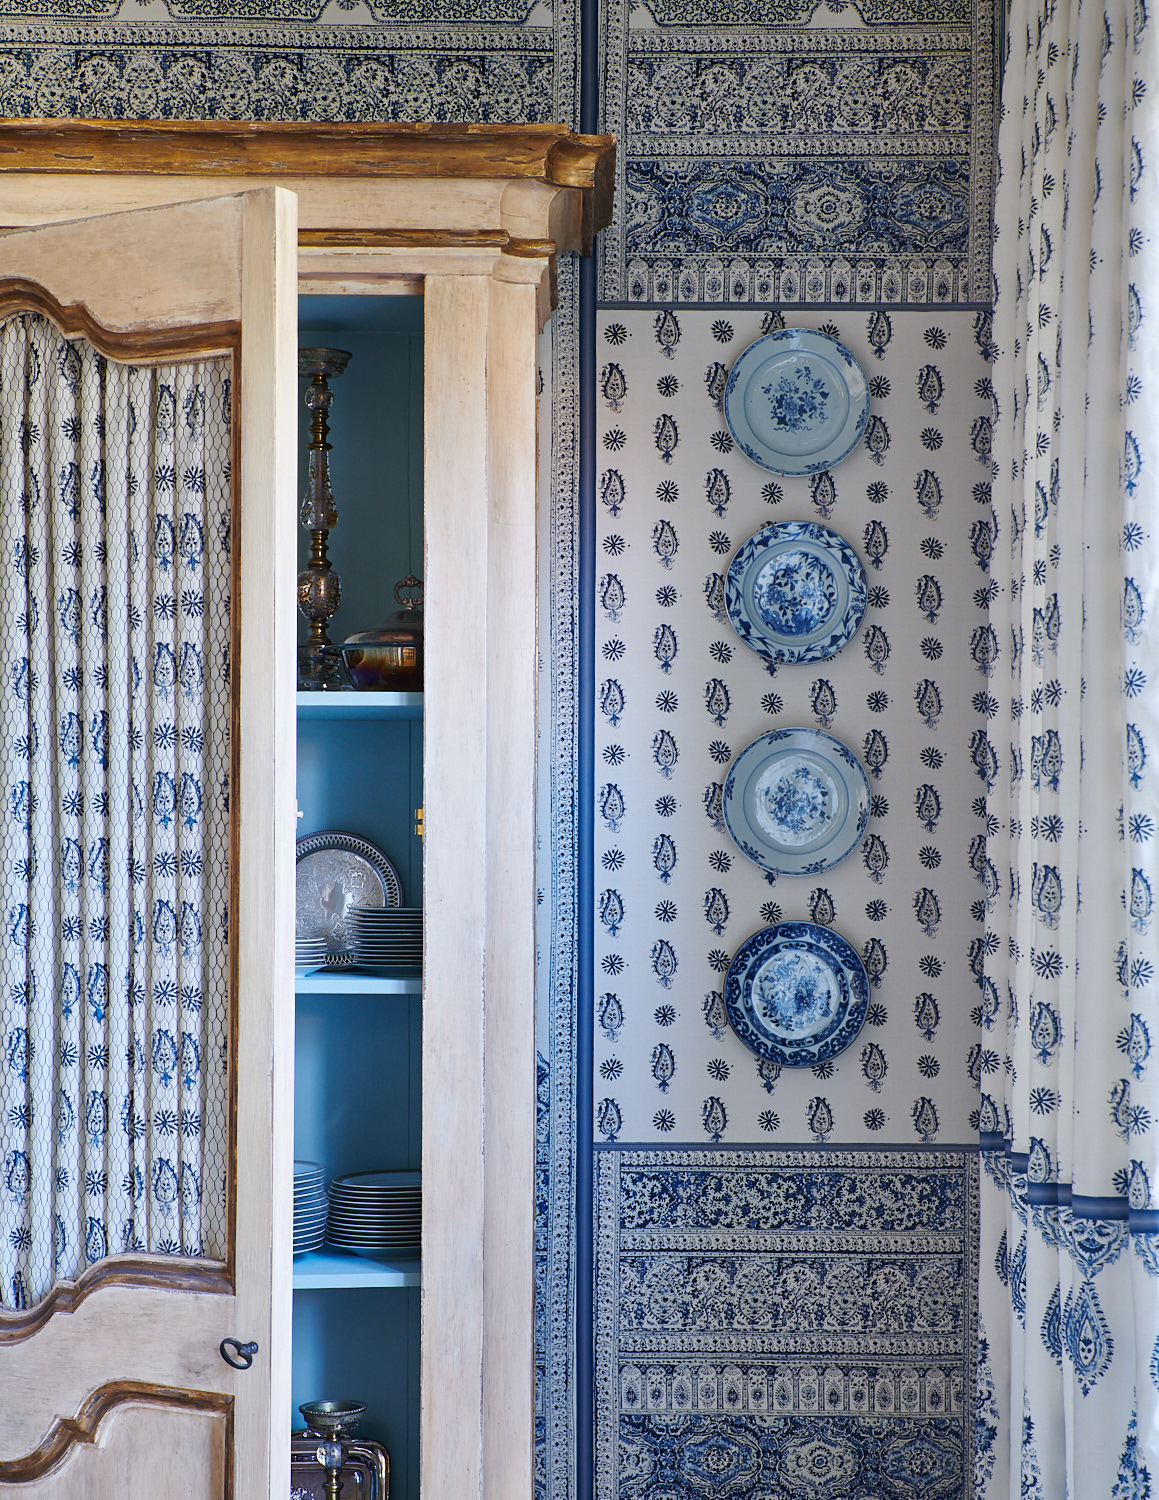 Armoire with paisley-patterned covers